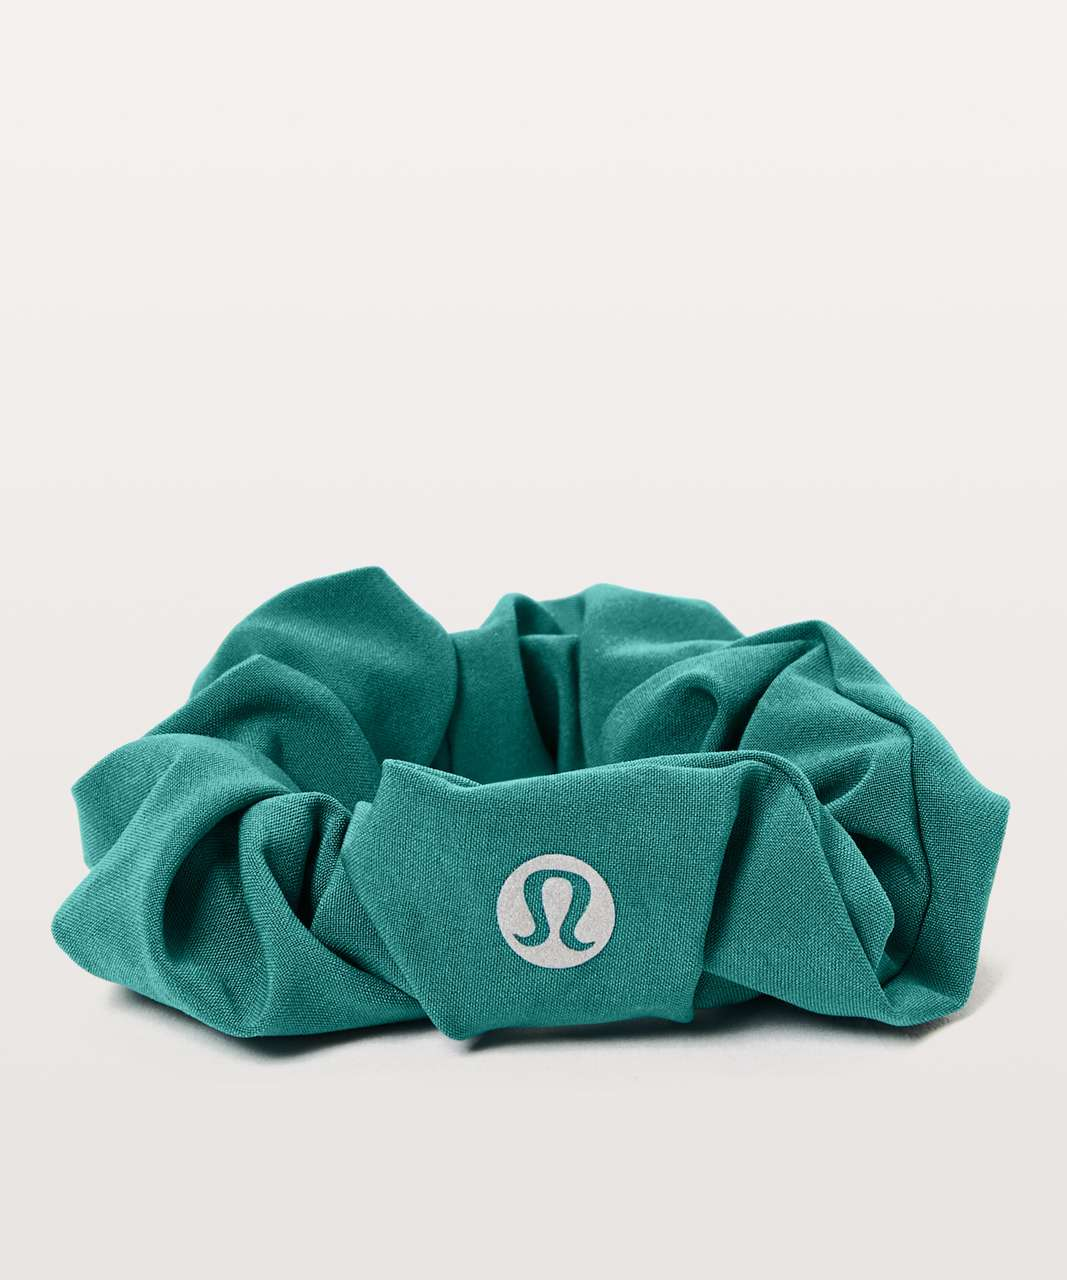 Lululemon Uplifting Scrunchie - Camp Green